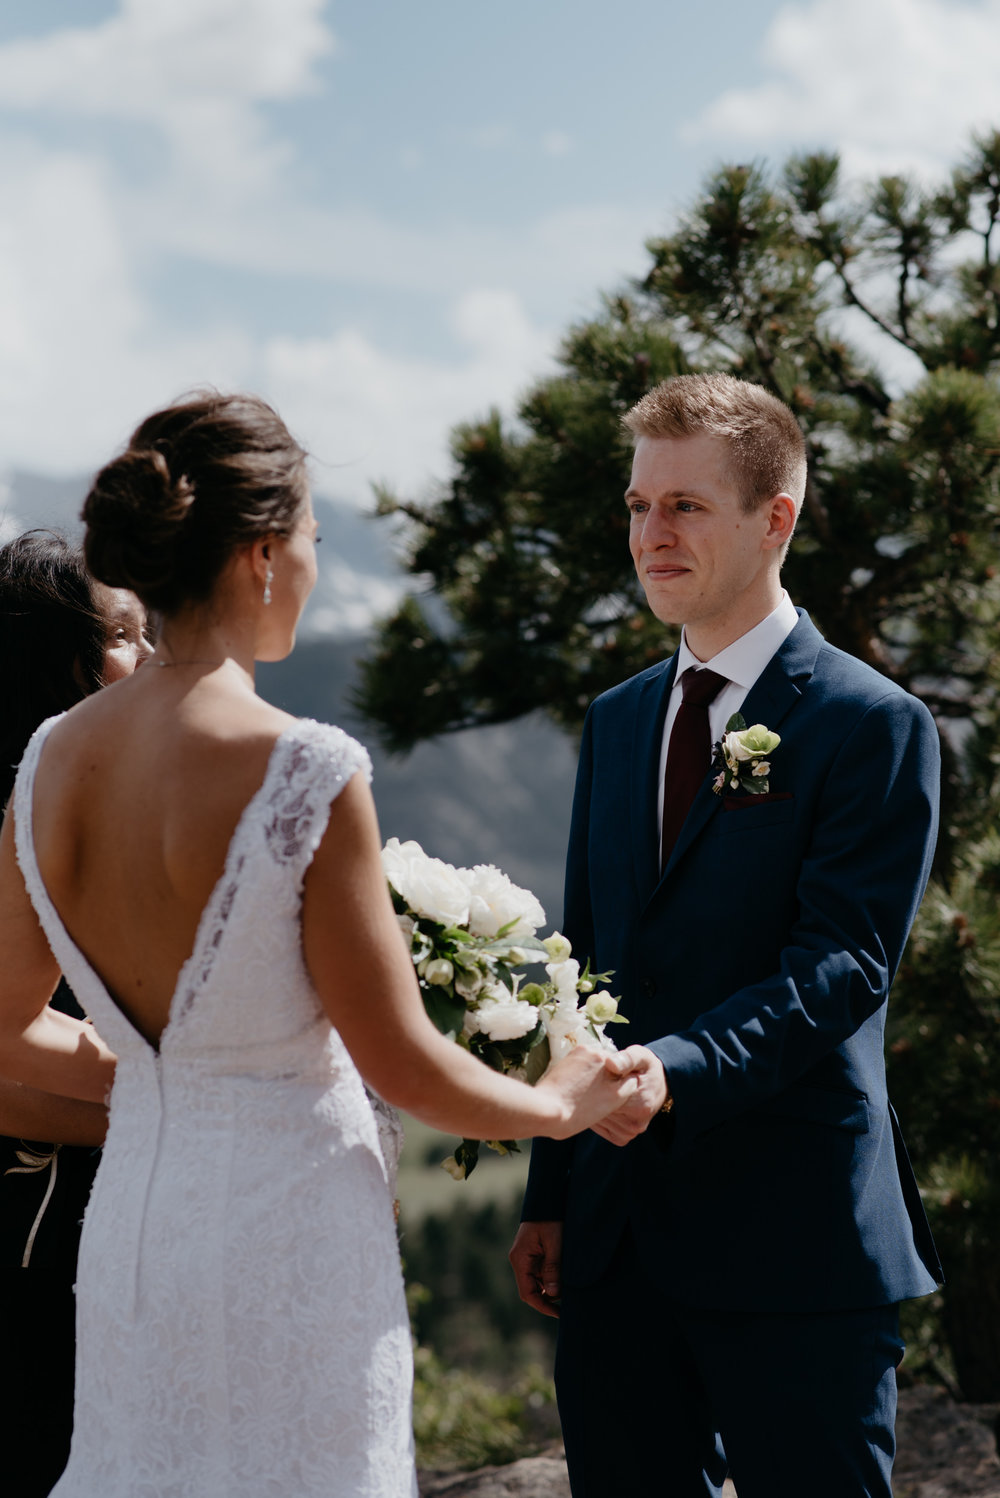 3M Curve wedding ceremony, Rocky Mountain National Park elopement. Colorado wedding photographer.